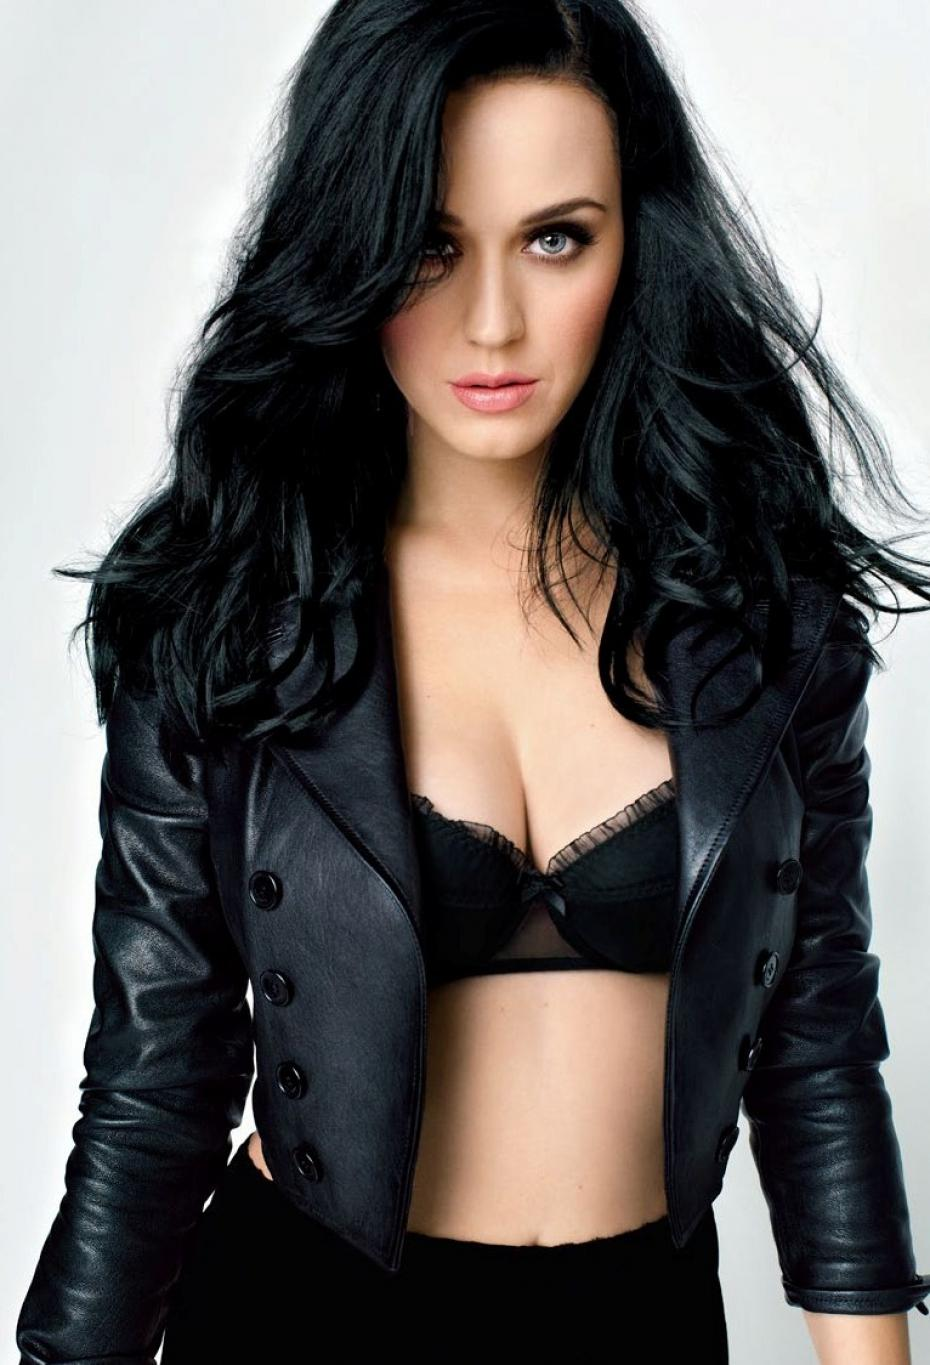 TREND WALLPAPERS: Wallpapers Katy Perry For You